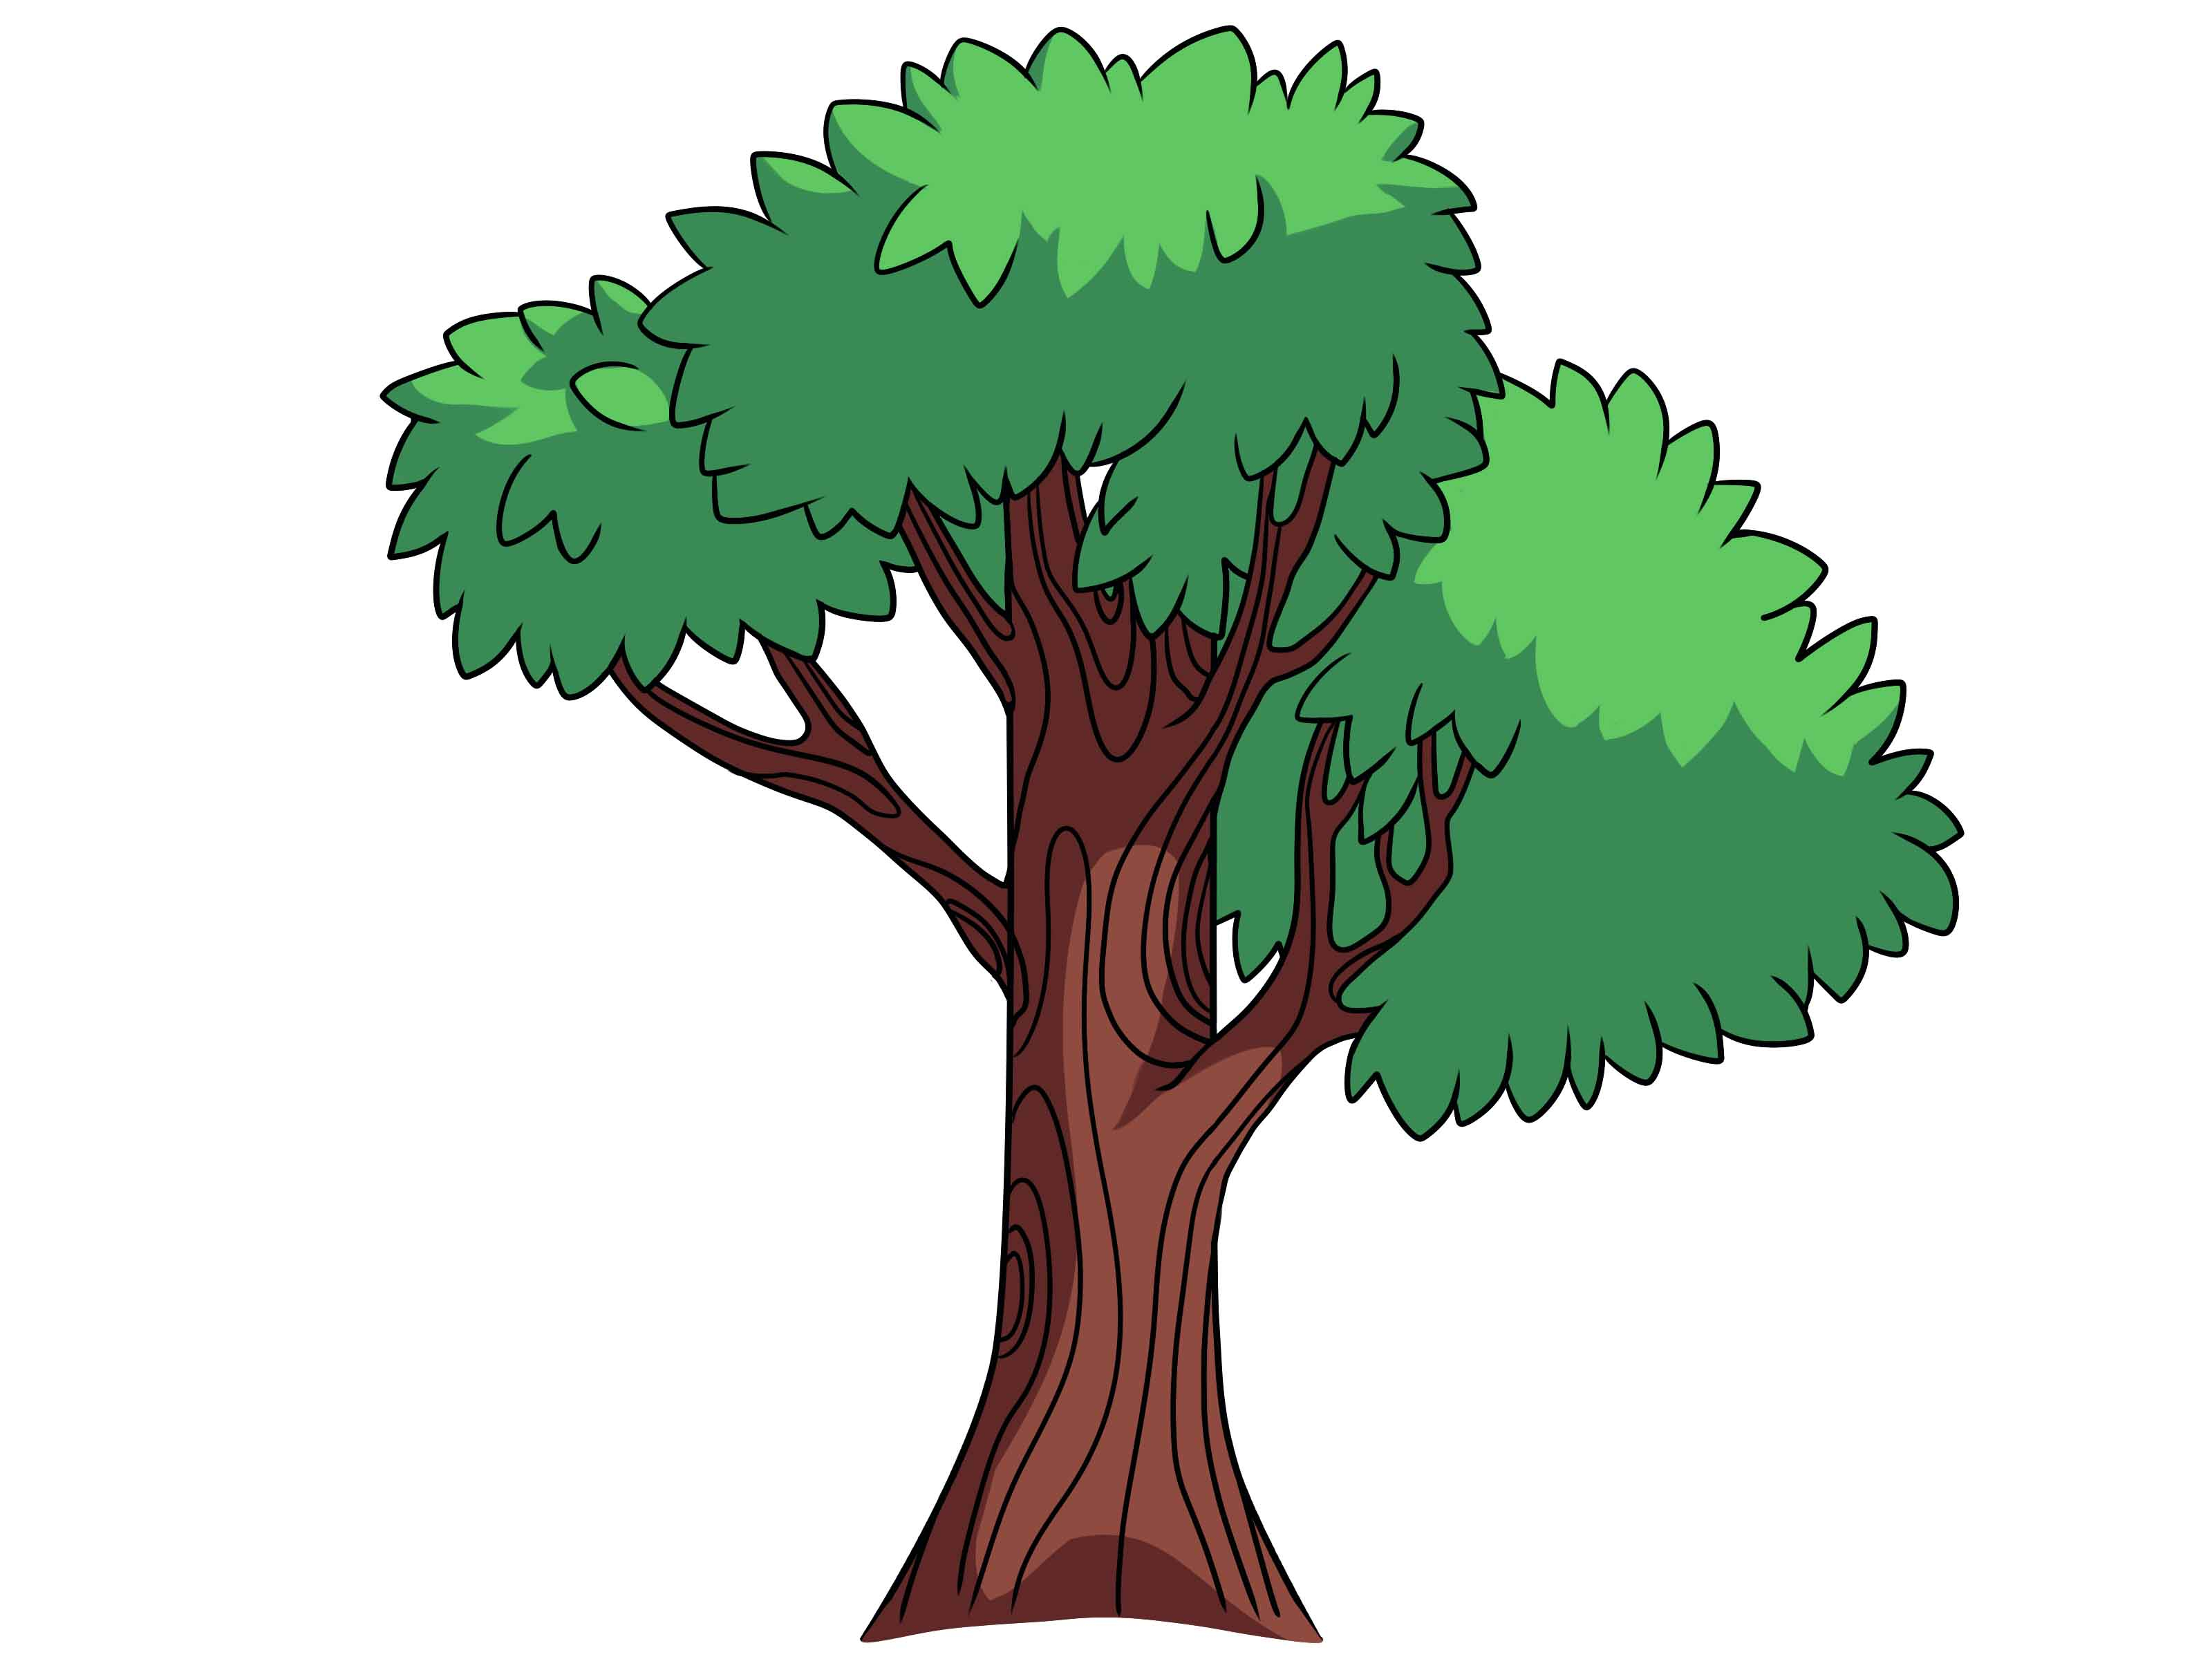 Tree Cartoon Drawing at GetDrawings.com | Free for personal use Tree ...